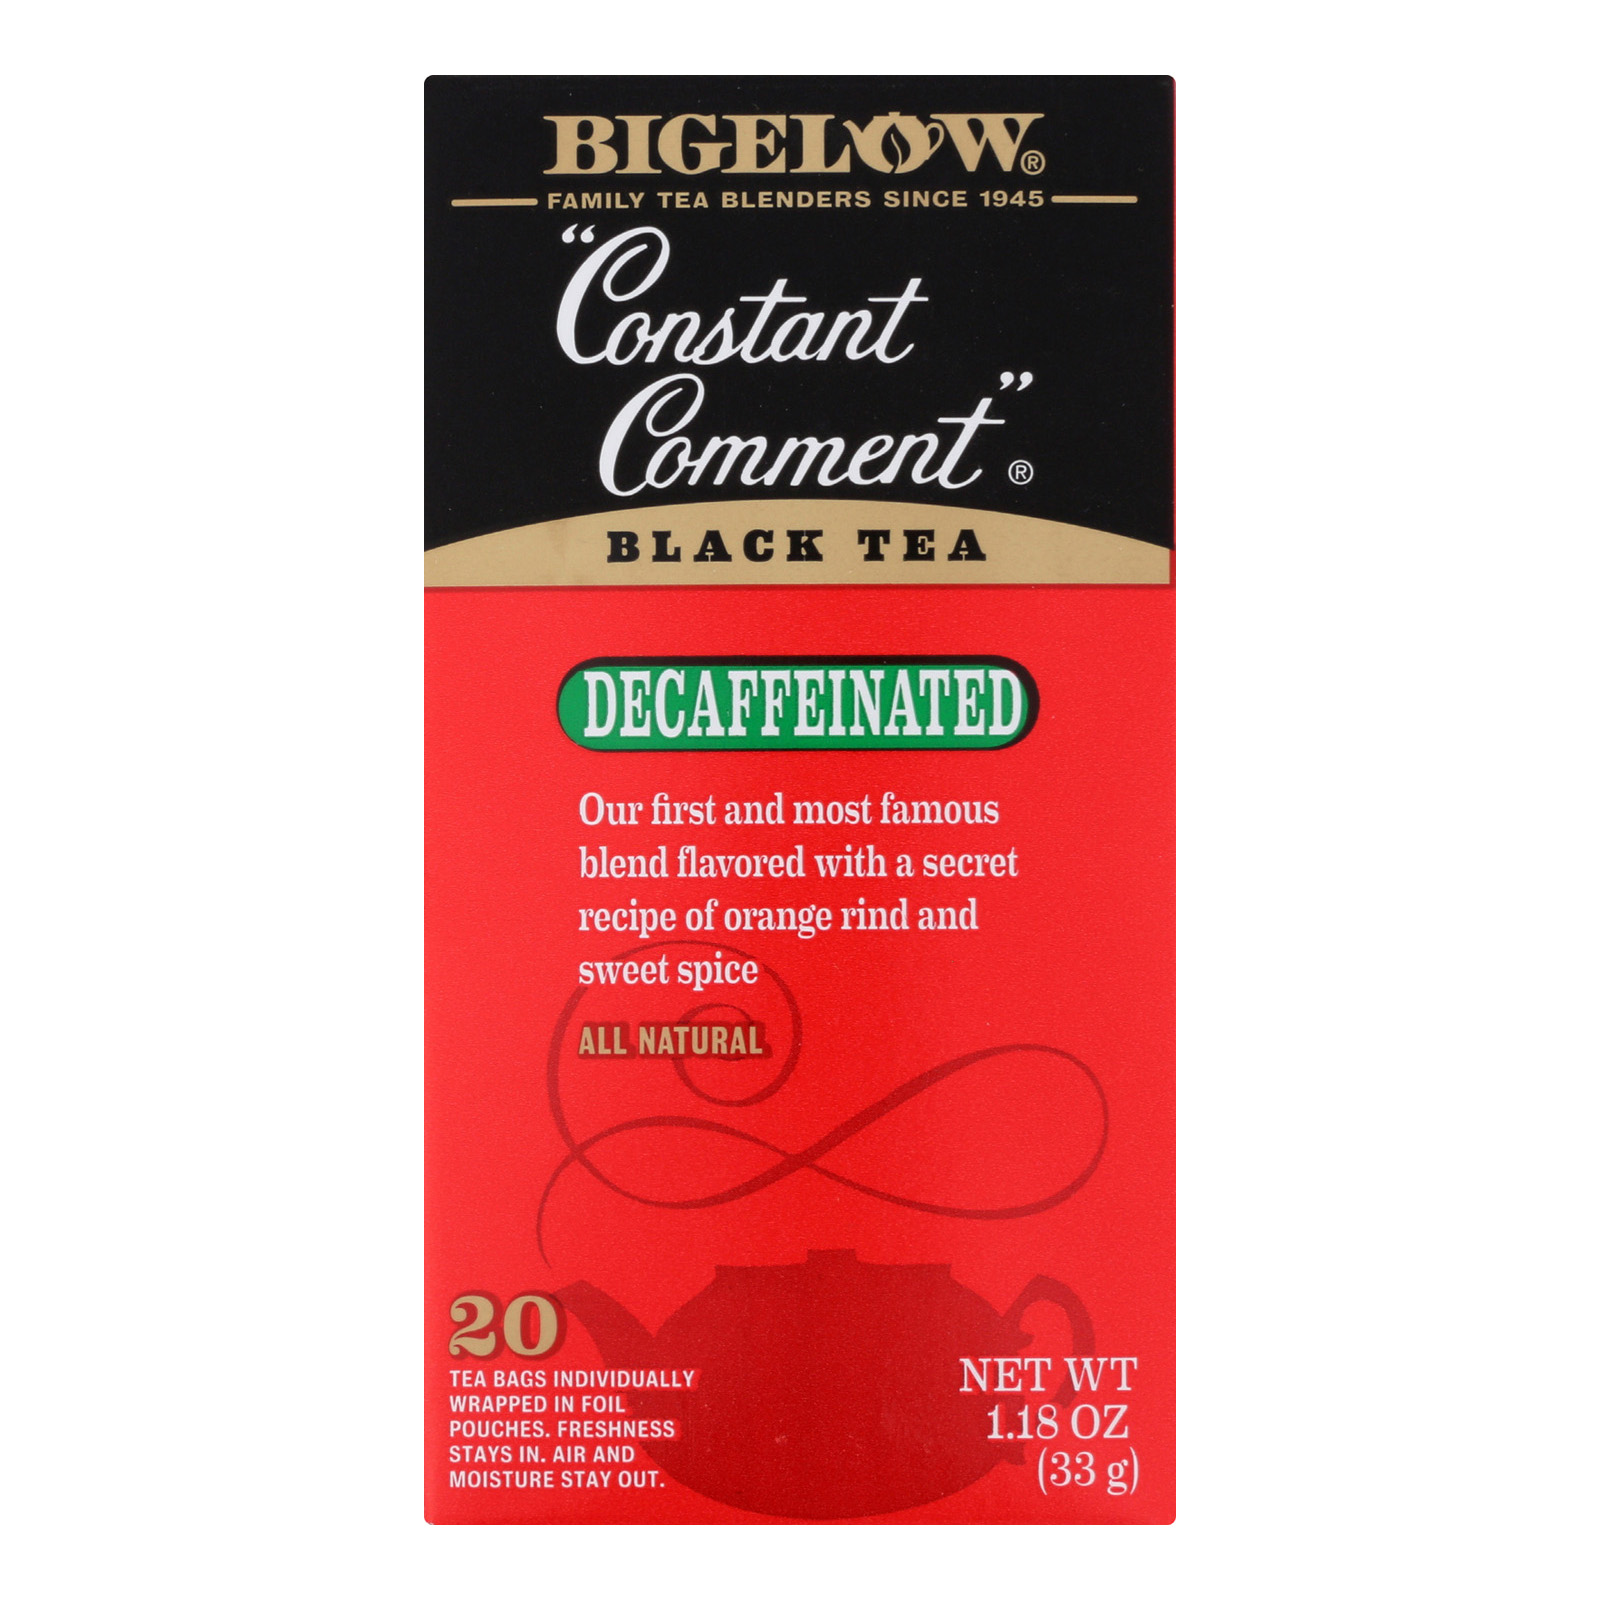 Bigelow Constant Comment Black Tea Decaffeinated 20 CT by R.C. Bigelow, Inc.